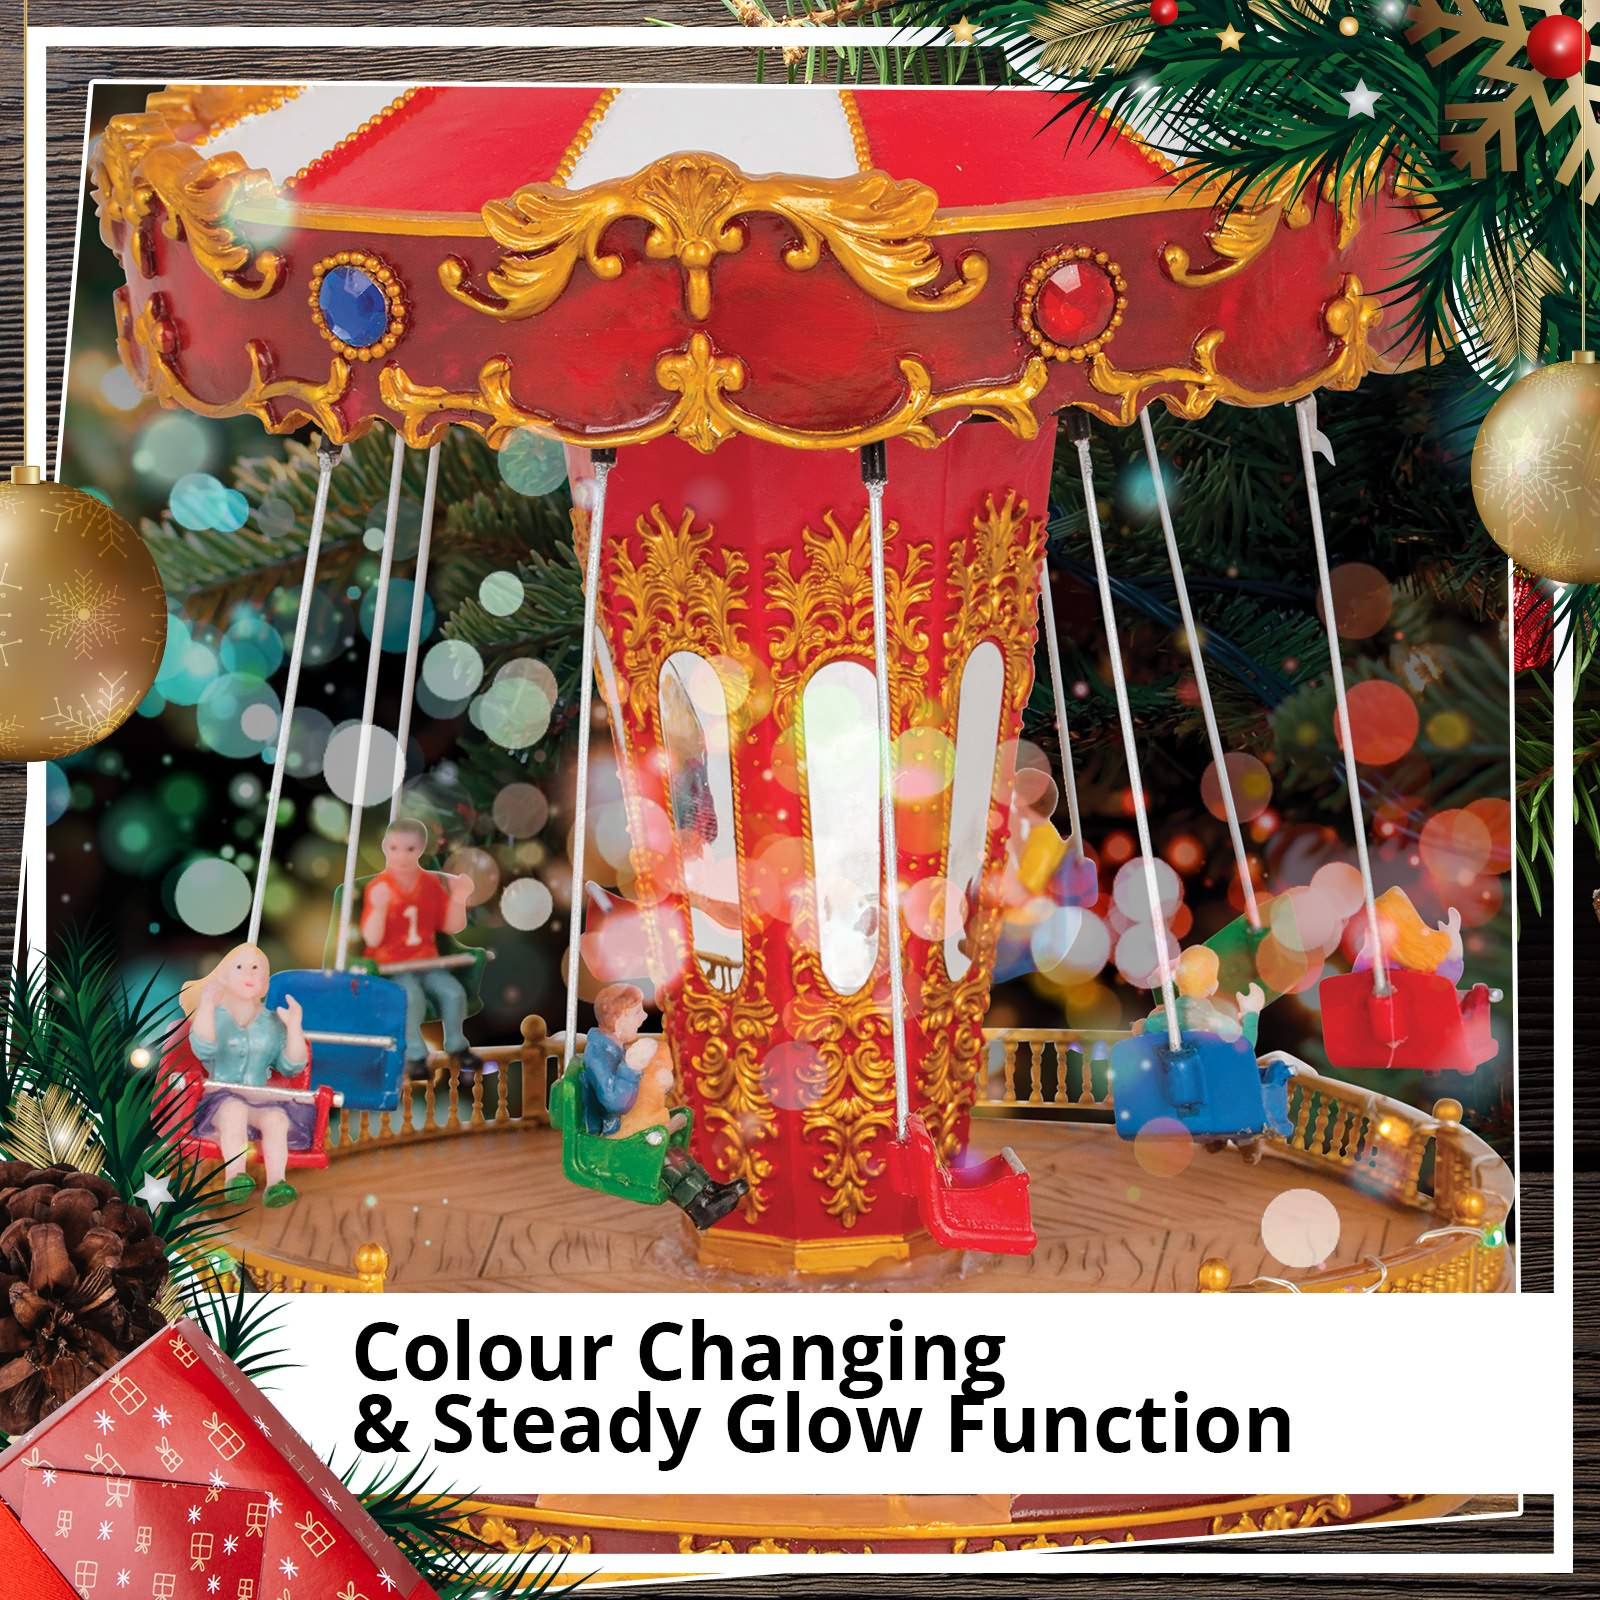 Christmas-Gift-Music-LED-Lights-Flying-Swing-Chairs-Home-Play-Toys-Decoration